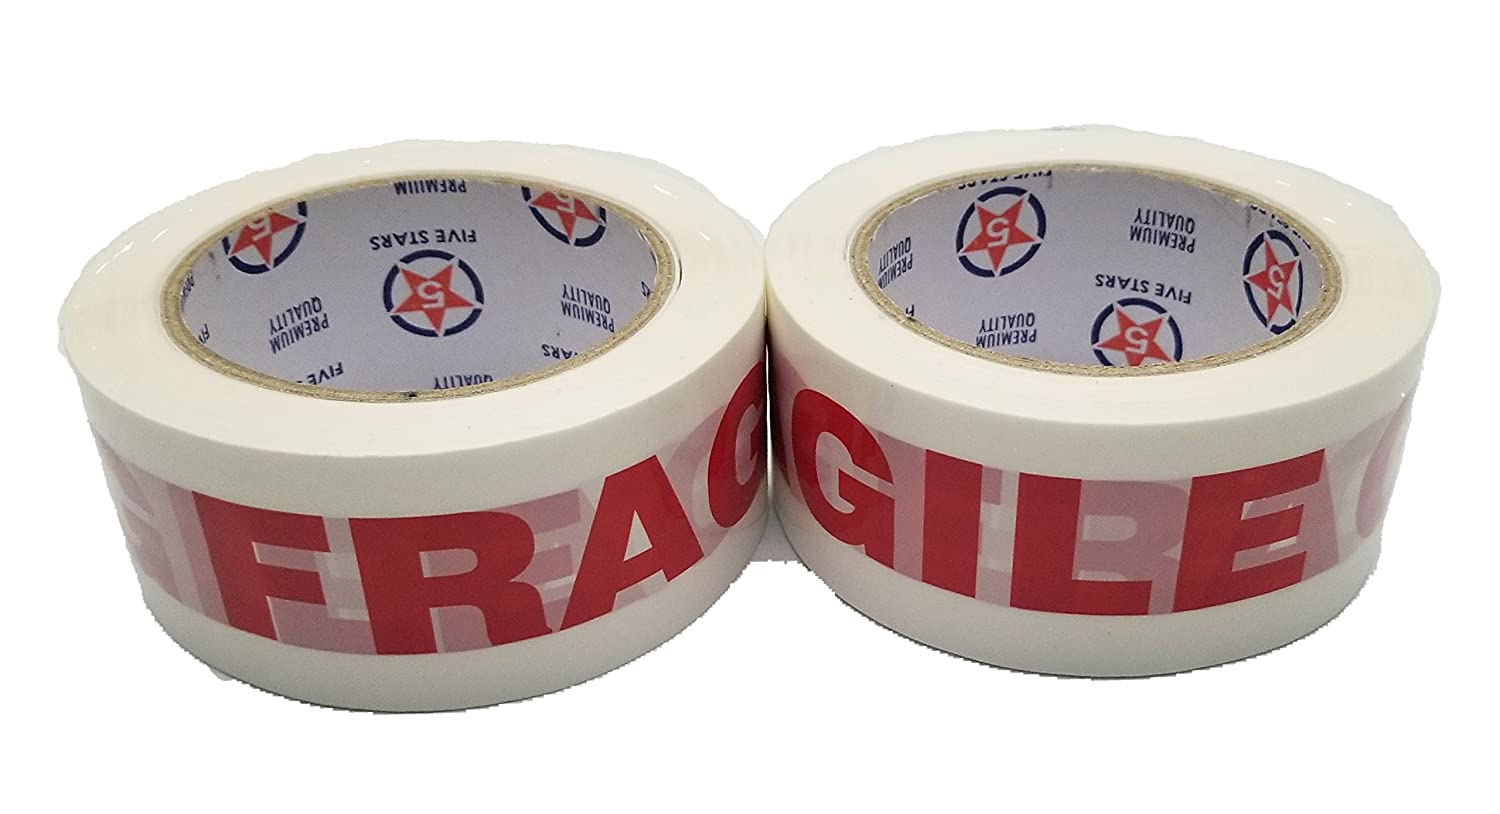 2 Roll Warning Fragile Tape-Handle with Care Packing Box Care Packing Sealing Tape Printing Security Tape-2 Inch x 330 Feet (110 Yards) BUNFIREs